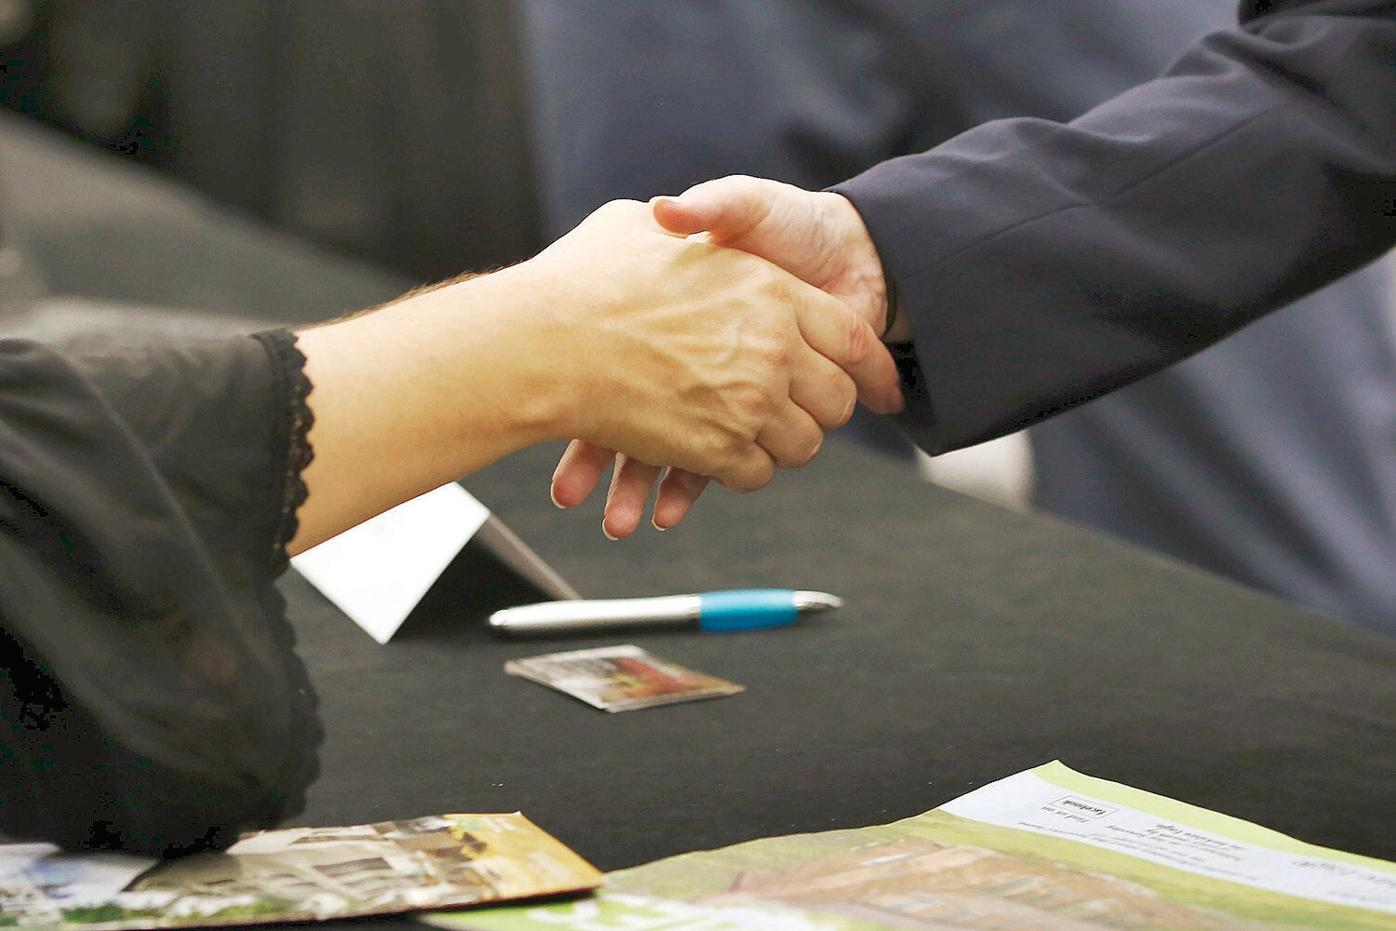 Finding work after 50: Interest high at inaugural job fair in Pittsfield